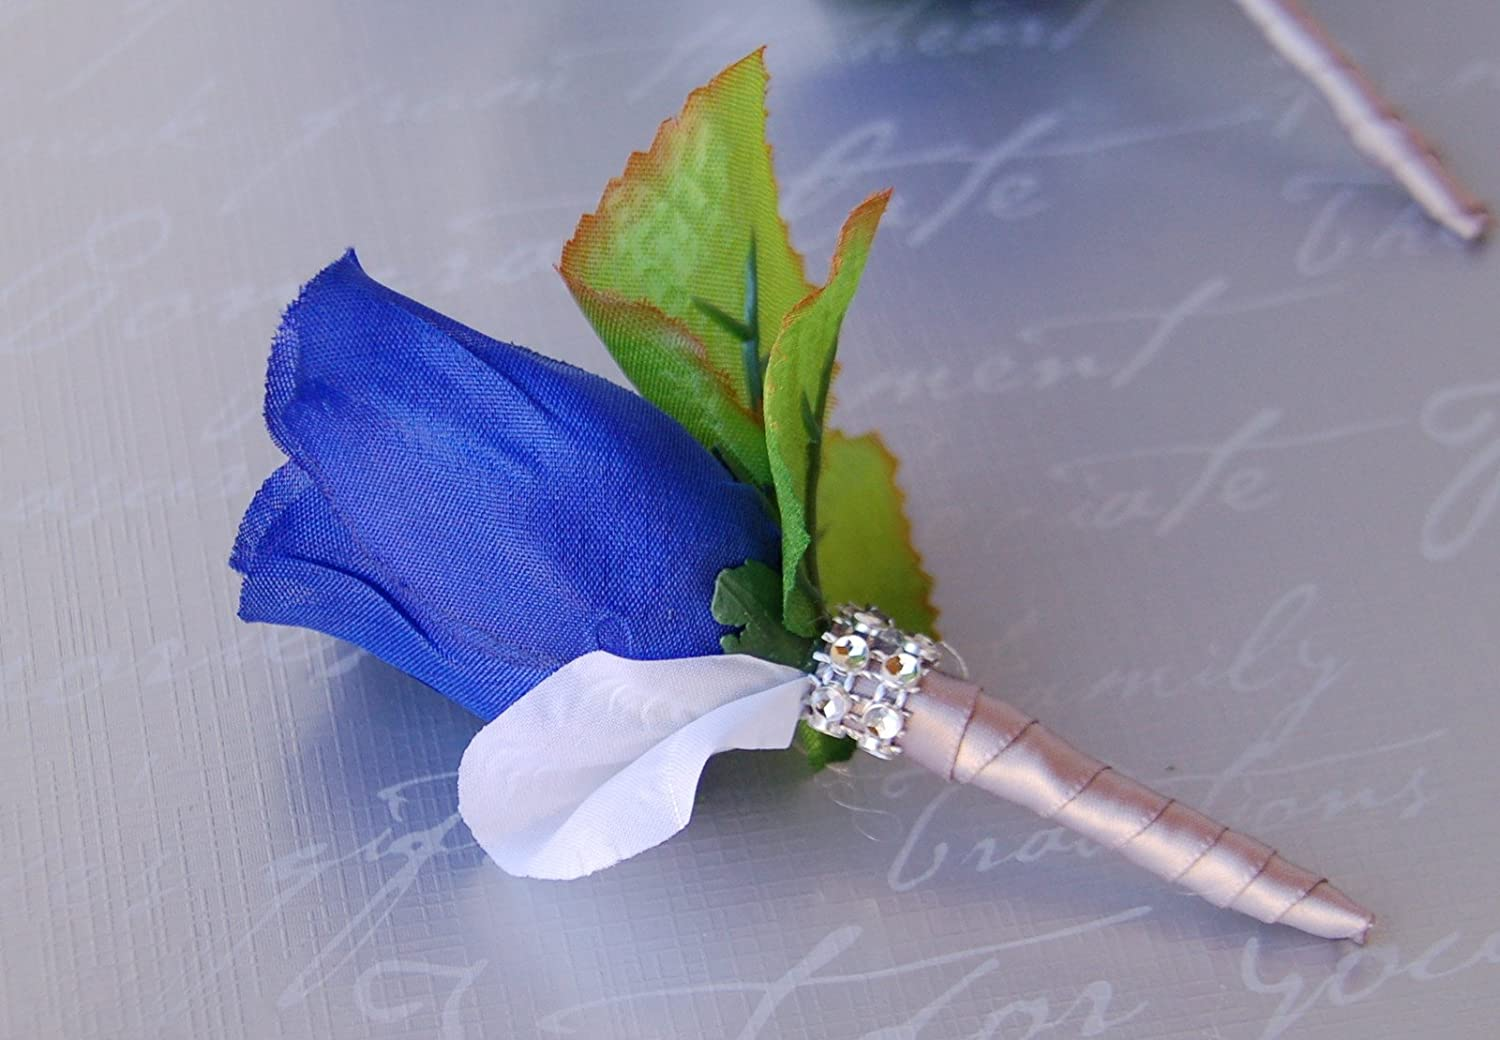 Amazon boutonniere royal blue rose silver ribbon with white amazon boutonniere royal blue rose silver ribbon with white petal boutonniere with pin for prom party wedding home kitchen izmirmasajfo Gallery